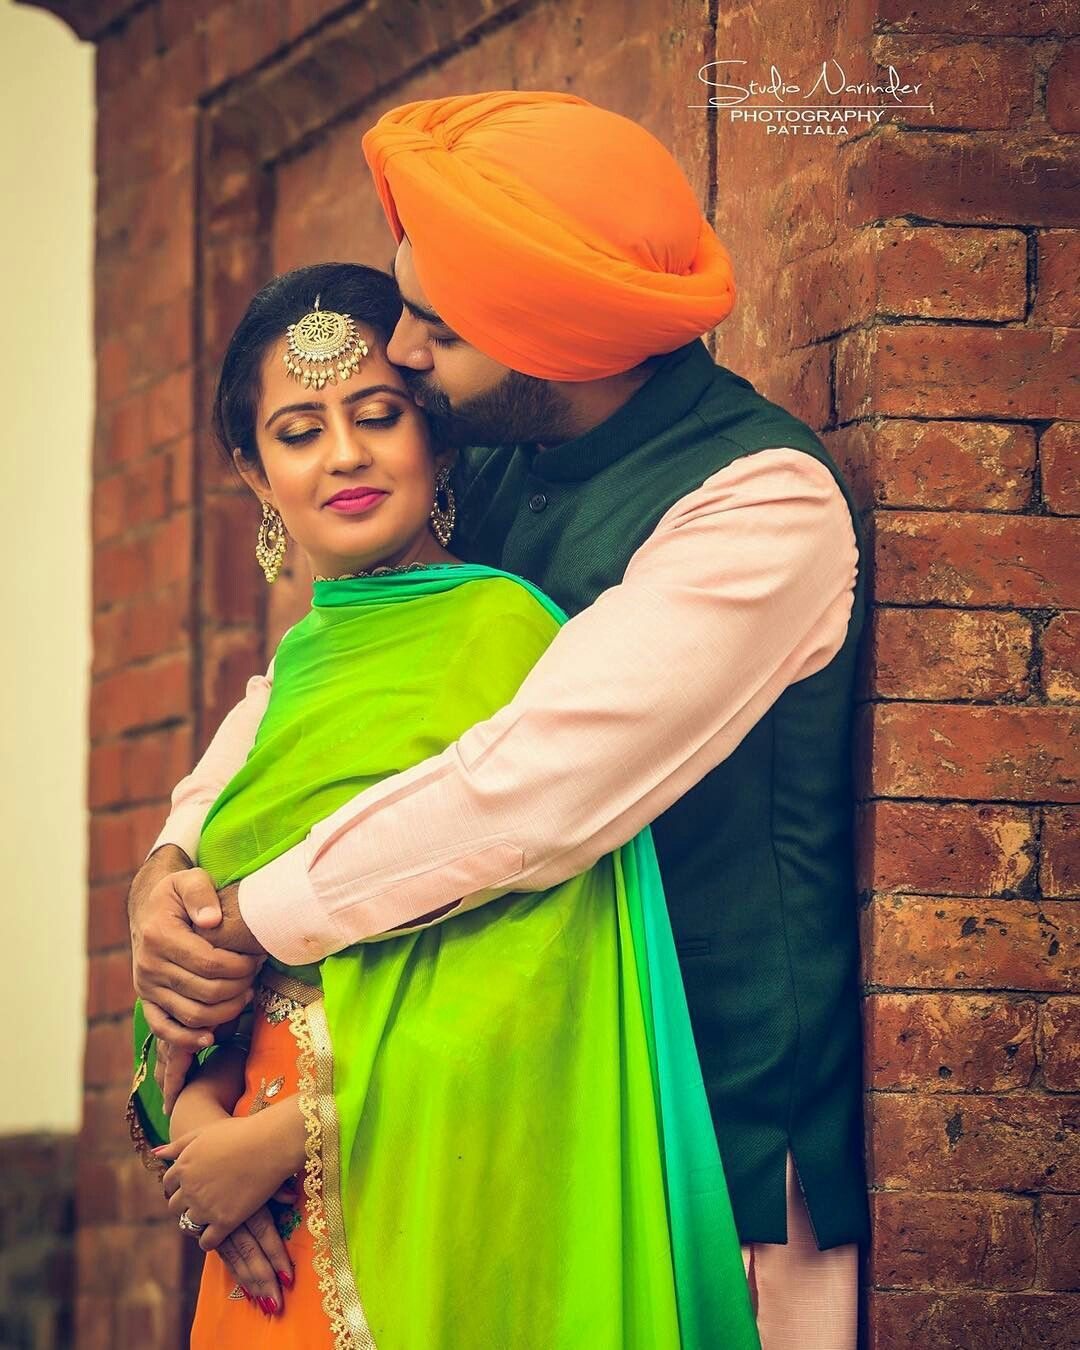 discover ideas about punjabi wedding couple sikh couples romance 892833 hd wallpaper backgrounds download sikh couples romance